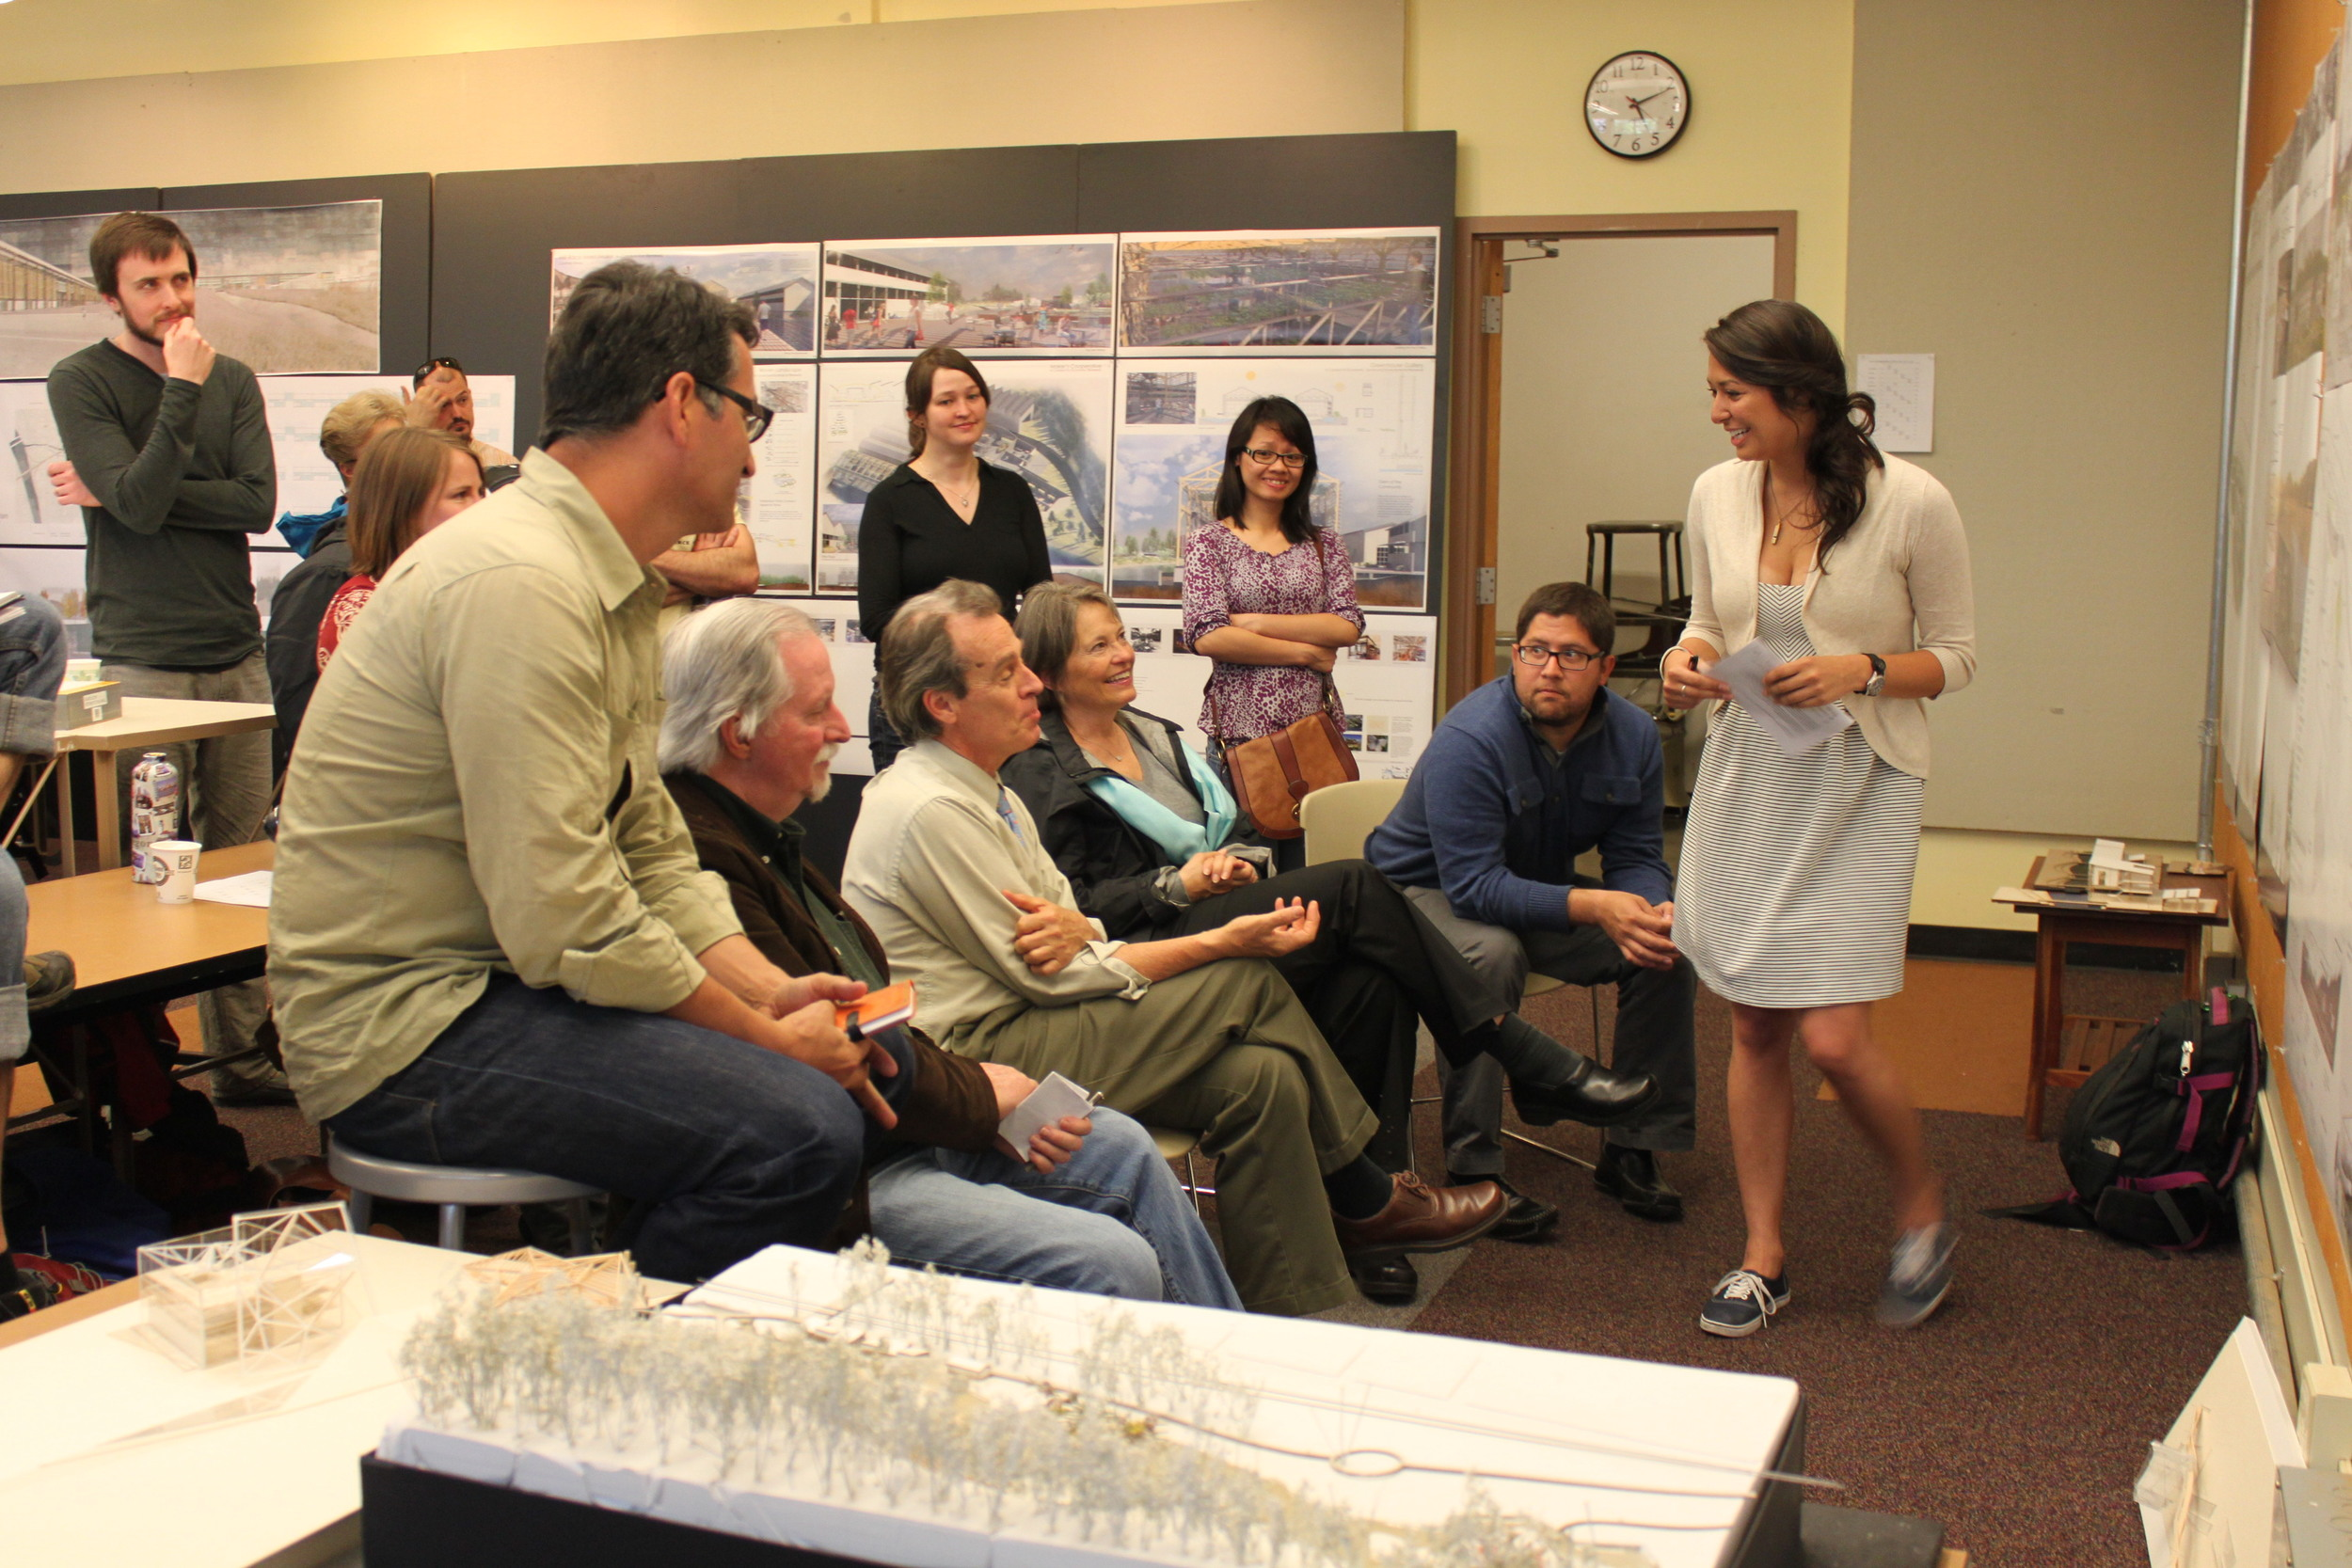 Professors from the School of Business and Structural Engineering, Springfield School District leadership, local AIA chapter chair, and community members joined in the final review.